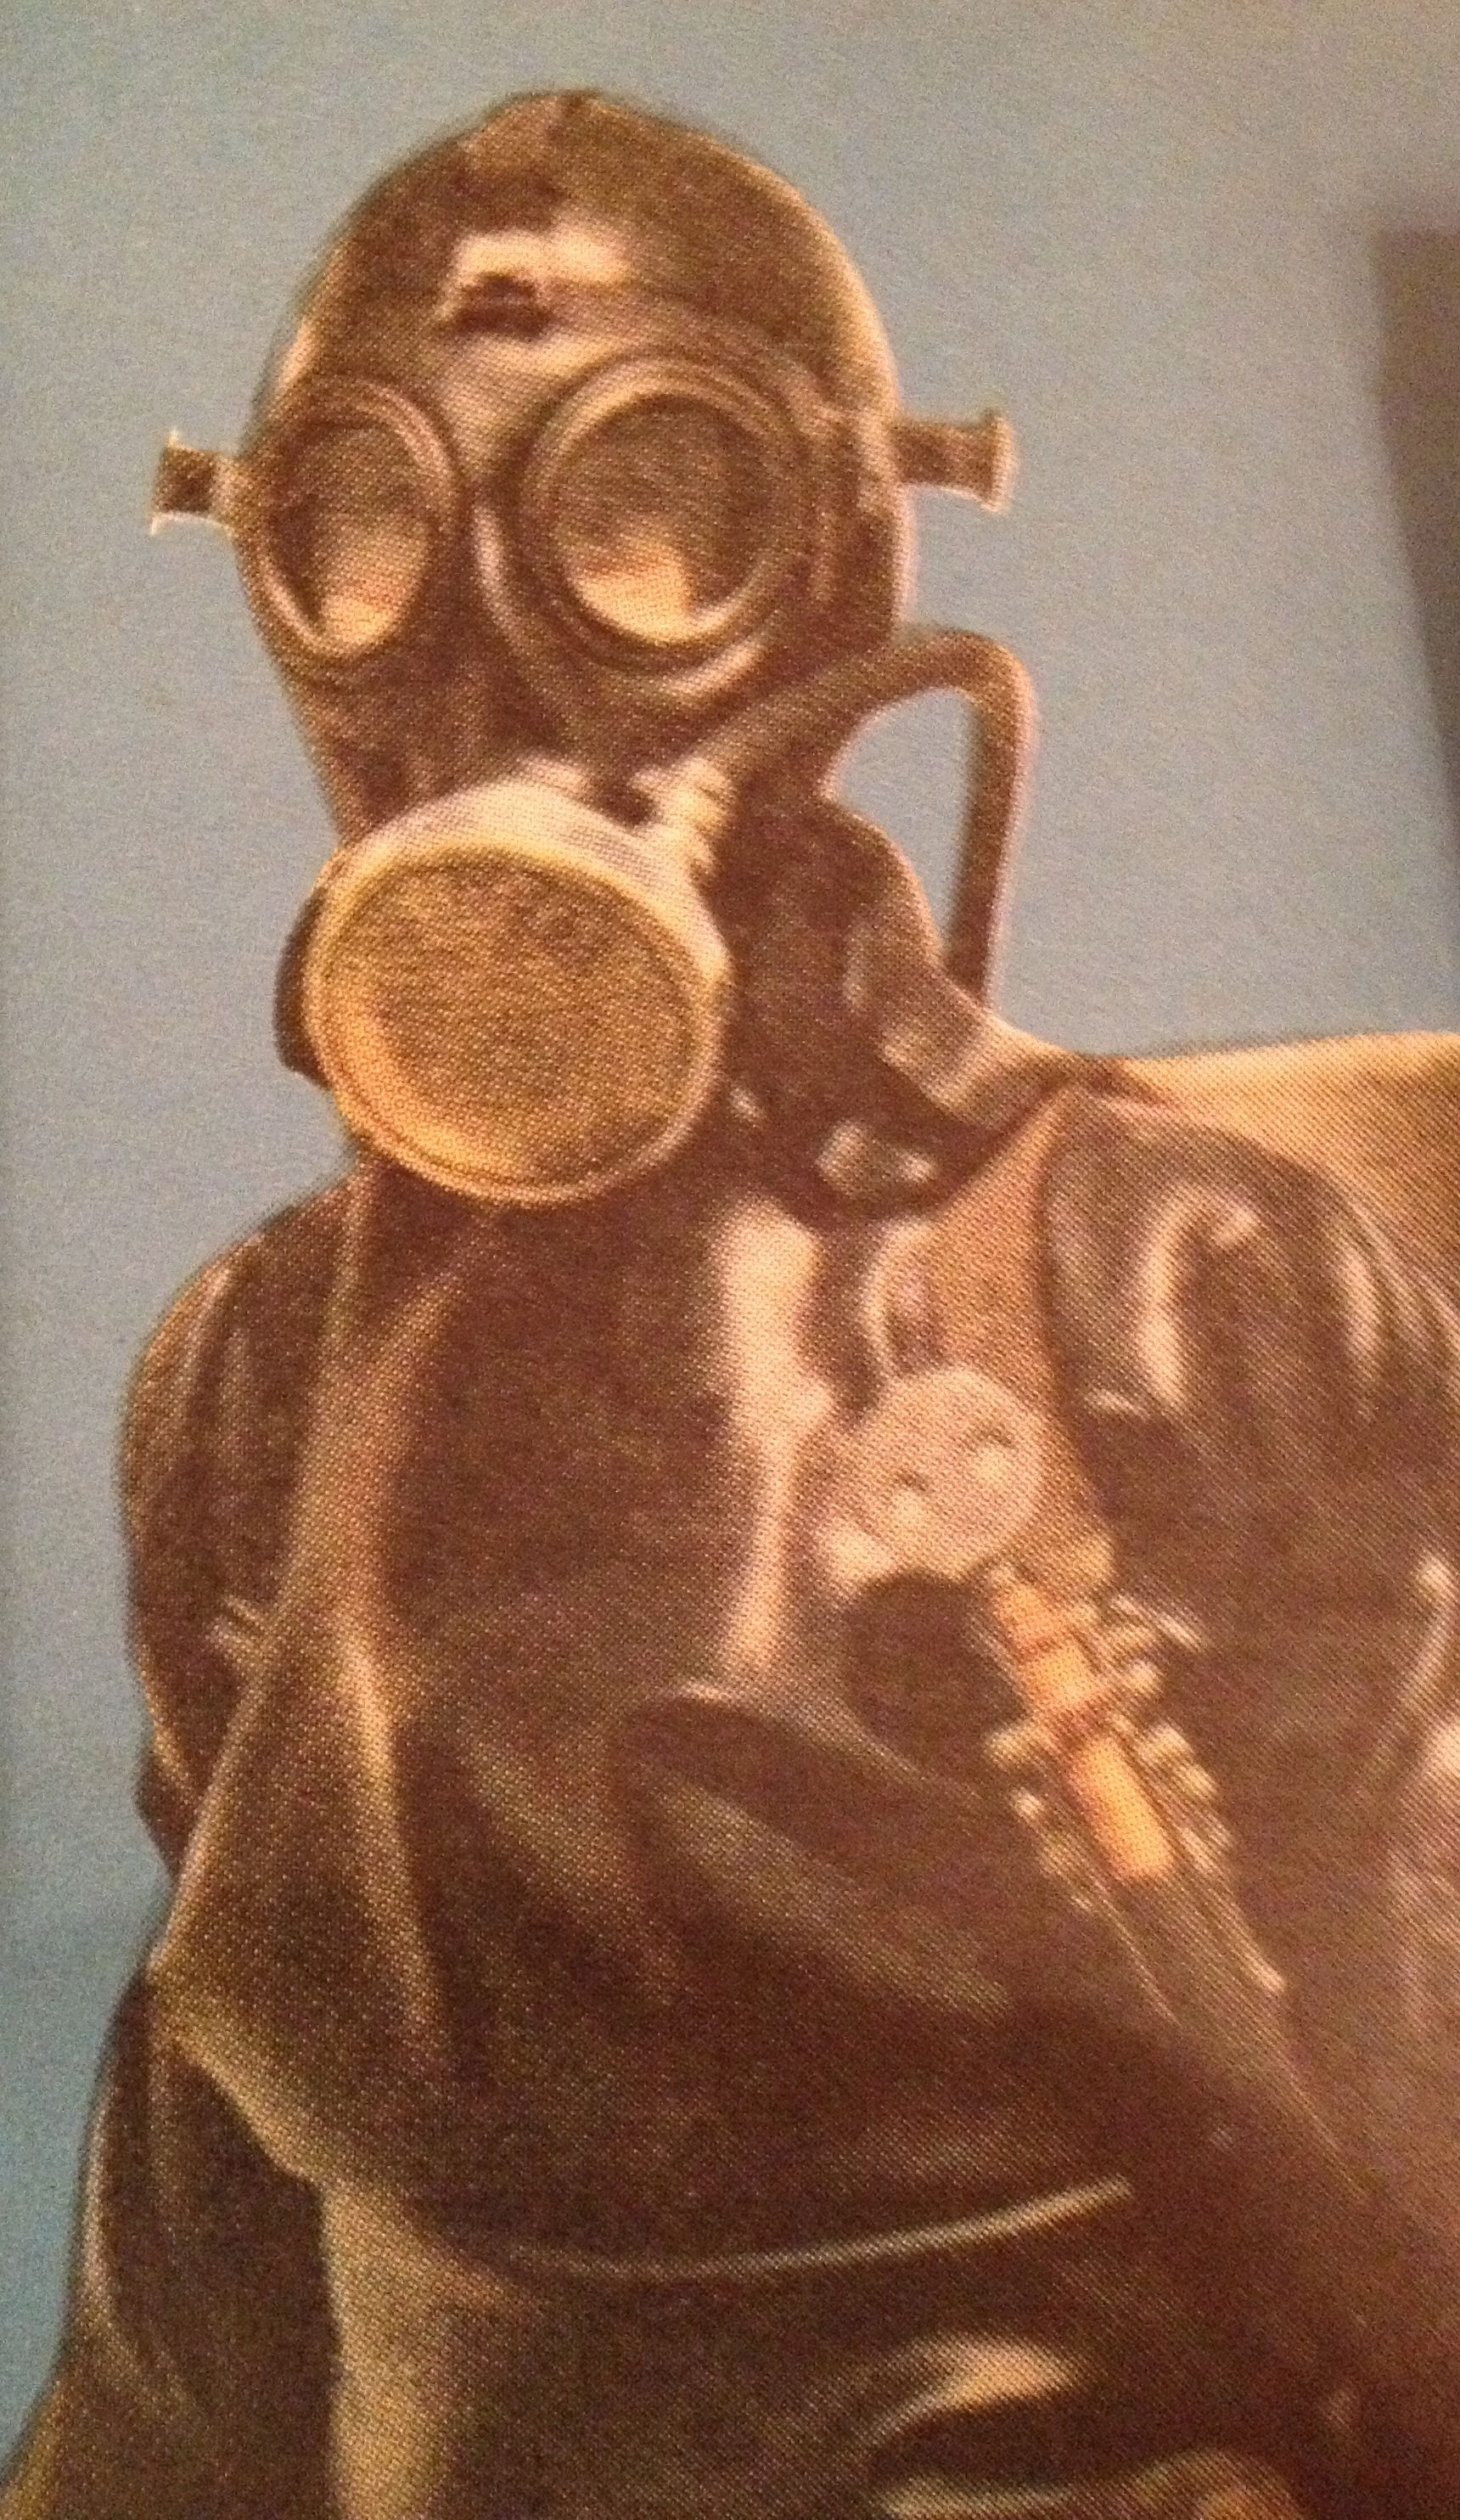 Advanced diver from a swedish magazine teknik from 1950